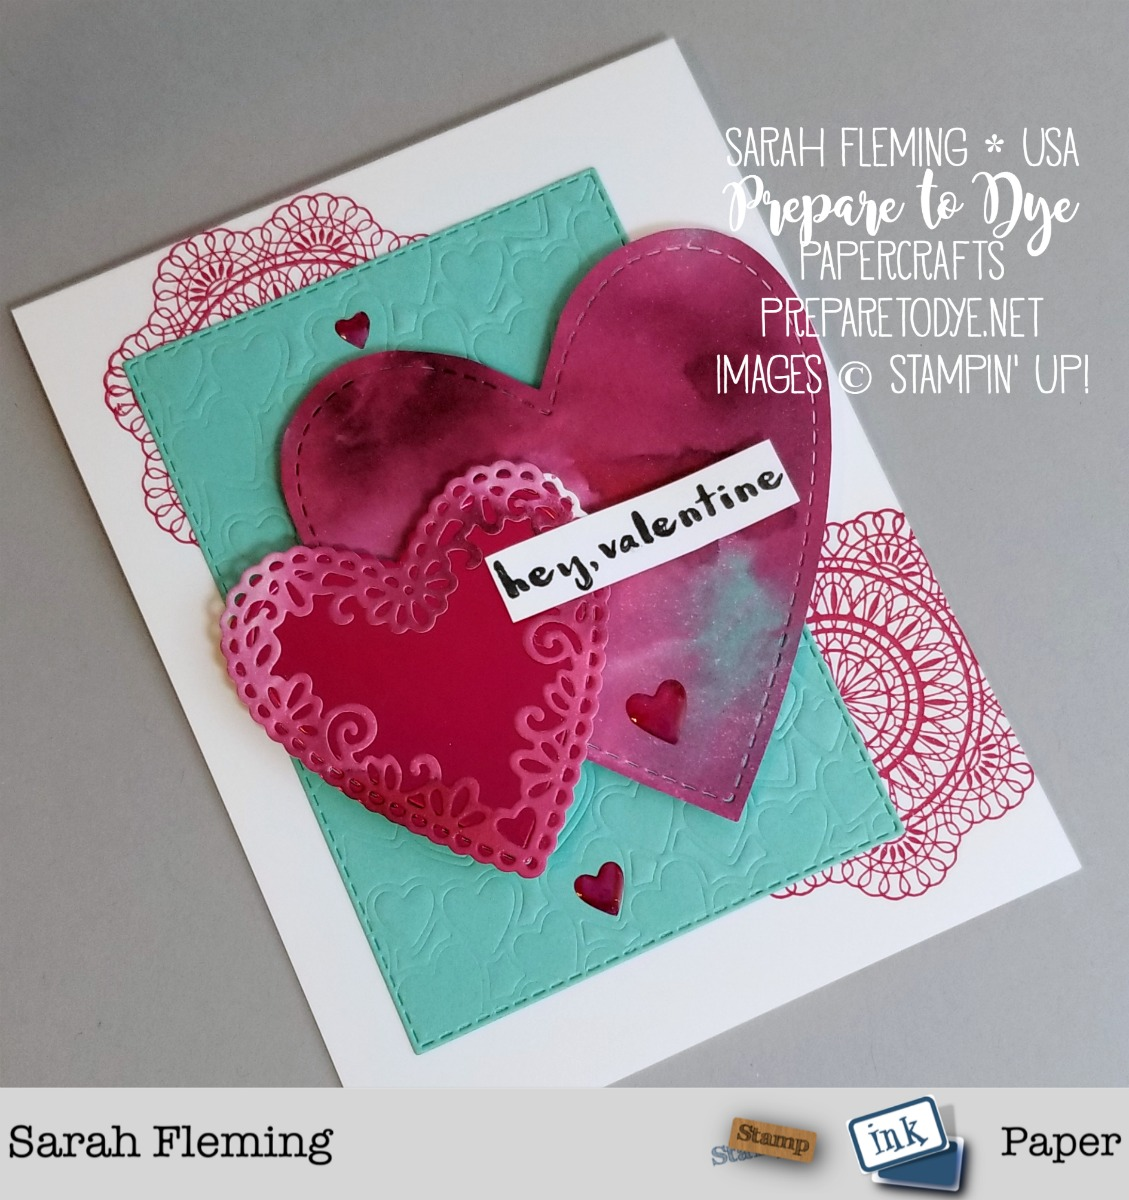 Stampin' Up! handmade Valentine's Day love card with ink smooshing technique - Dear Doily and Hey Love stamps with Rectangle Stitched framelits, Be Mine Stitched framelits, Heart Epoxy Droplets - Sarah Fleming - Prepare to Dye Papercrafts